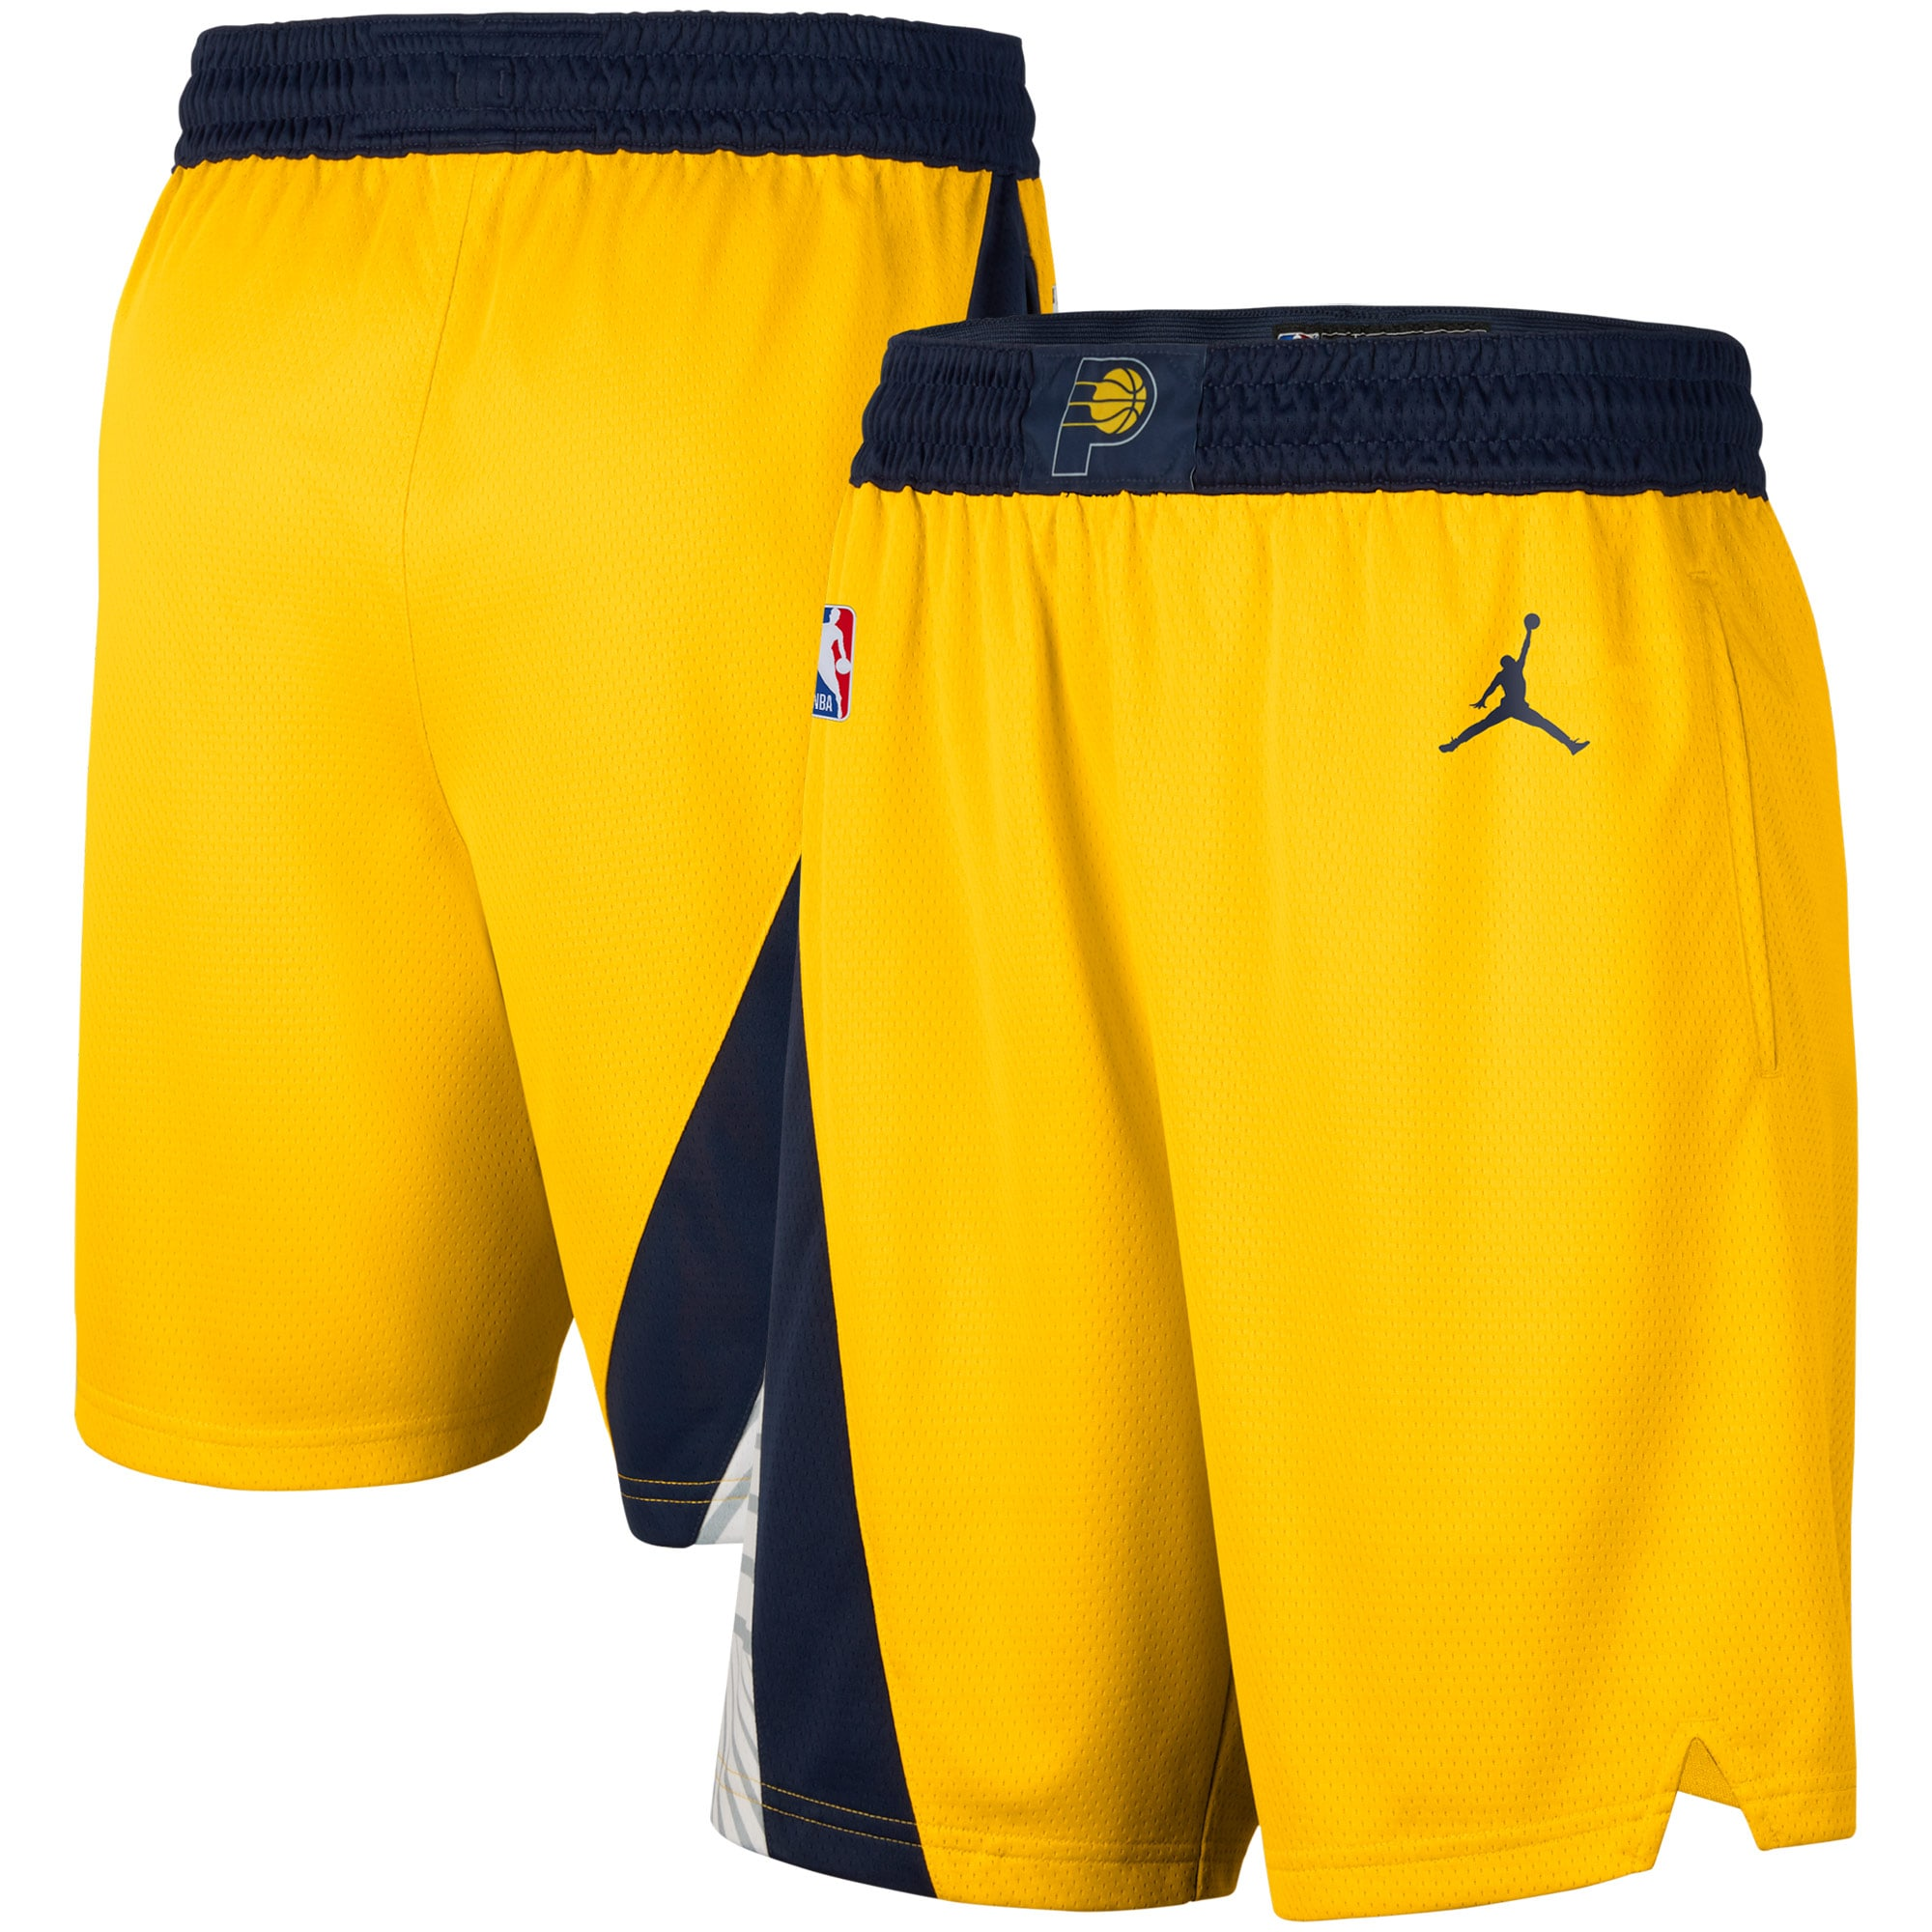 Indiana Pacers Jordan Brand 2020/2021 Association Edition Swingman Shorts - Gold/Navy